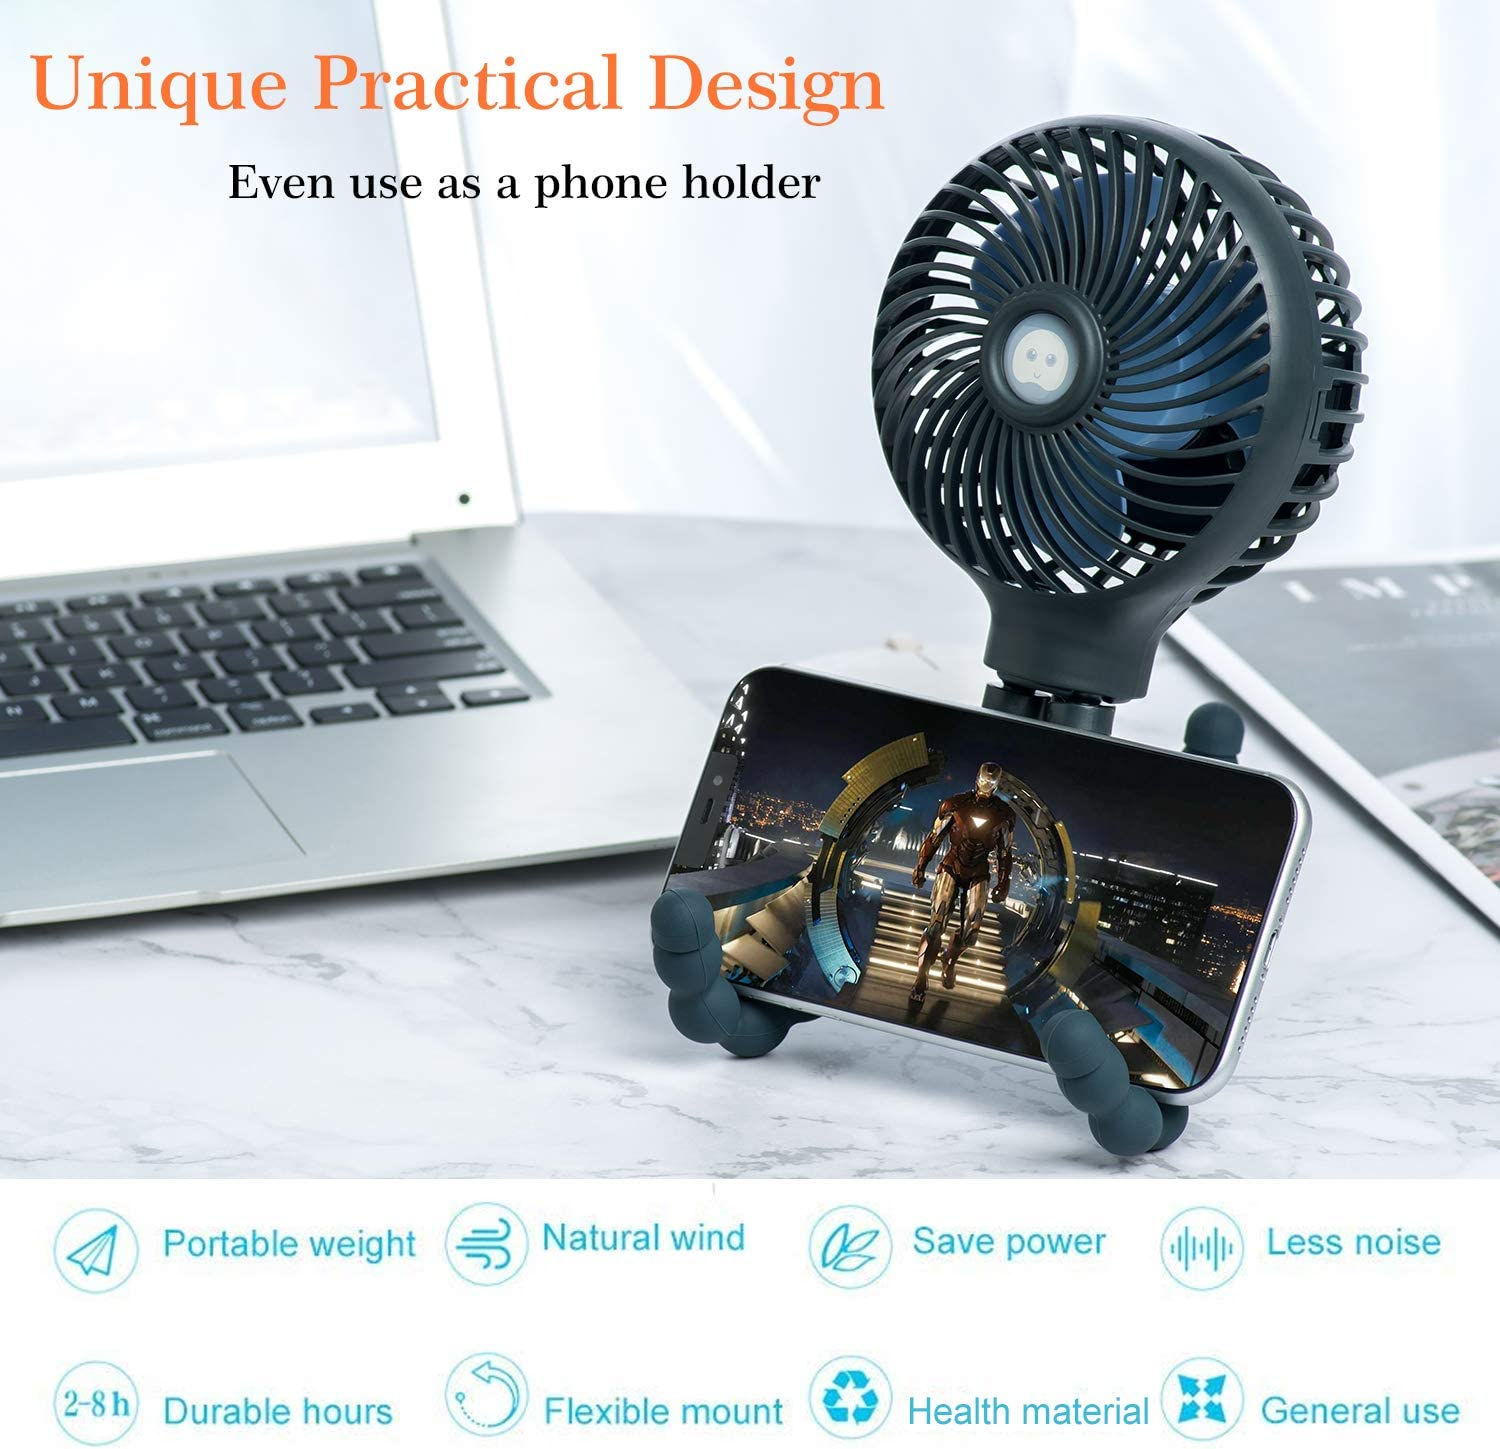 USB or Battery Powered Baby Stroller Fan snawowo Mini Handheld Personal Portable Fan Dark Blue Car Seat Fan Desk Fan with Flexible Tripod Fix on Stroller//Student Bed//Bike//Crib//Car Rides